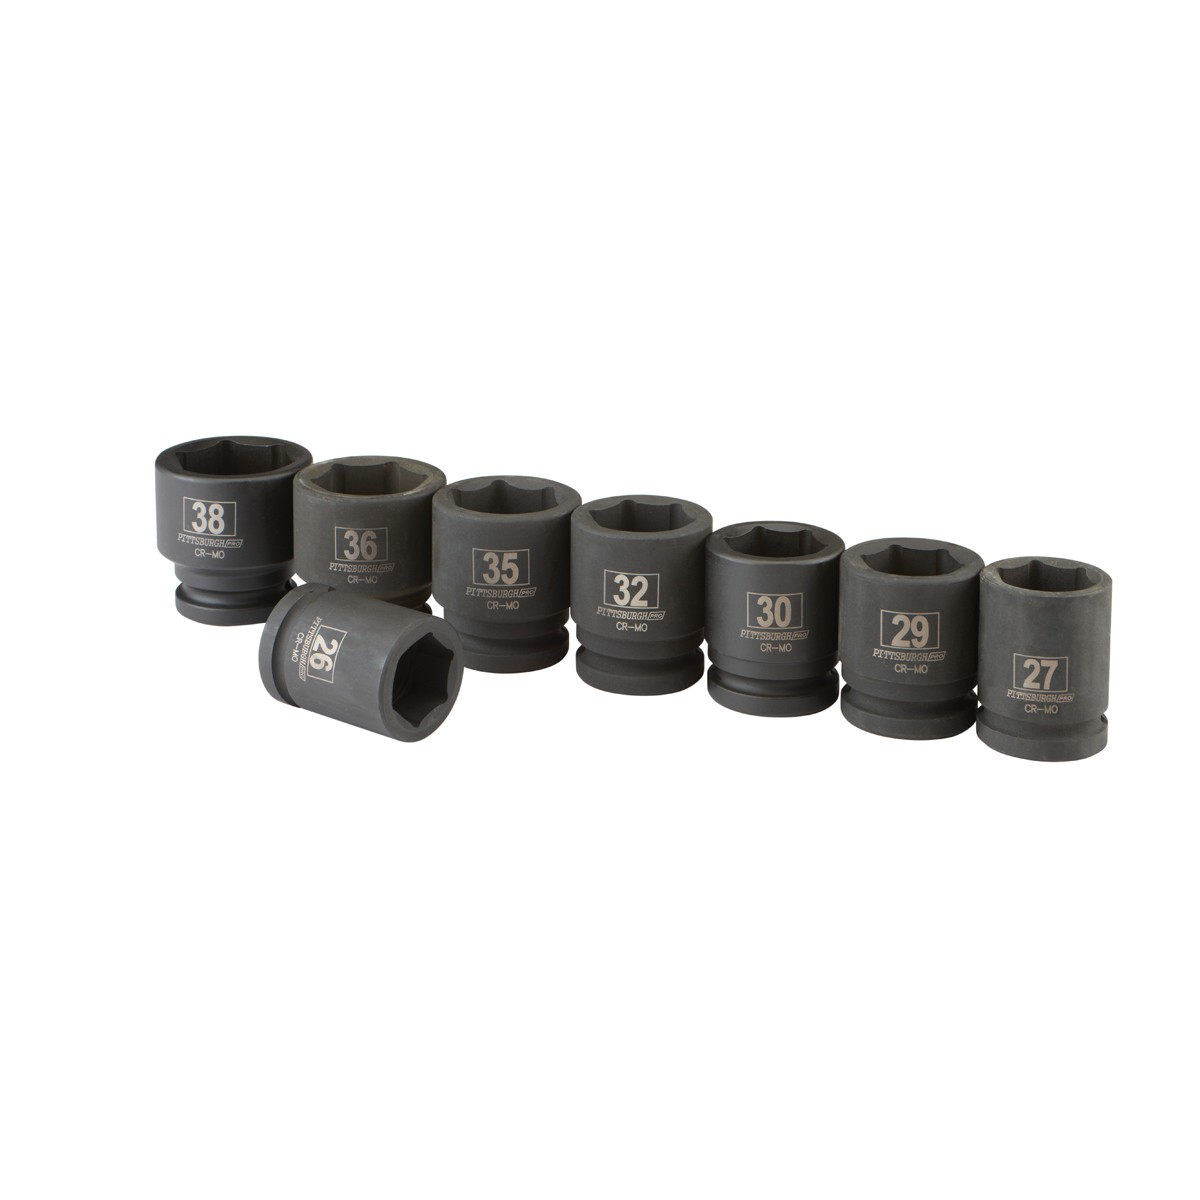 8 Pc 3/4 in. Drive Metric Impact Socket Set